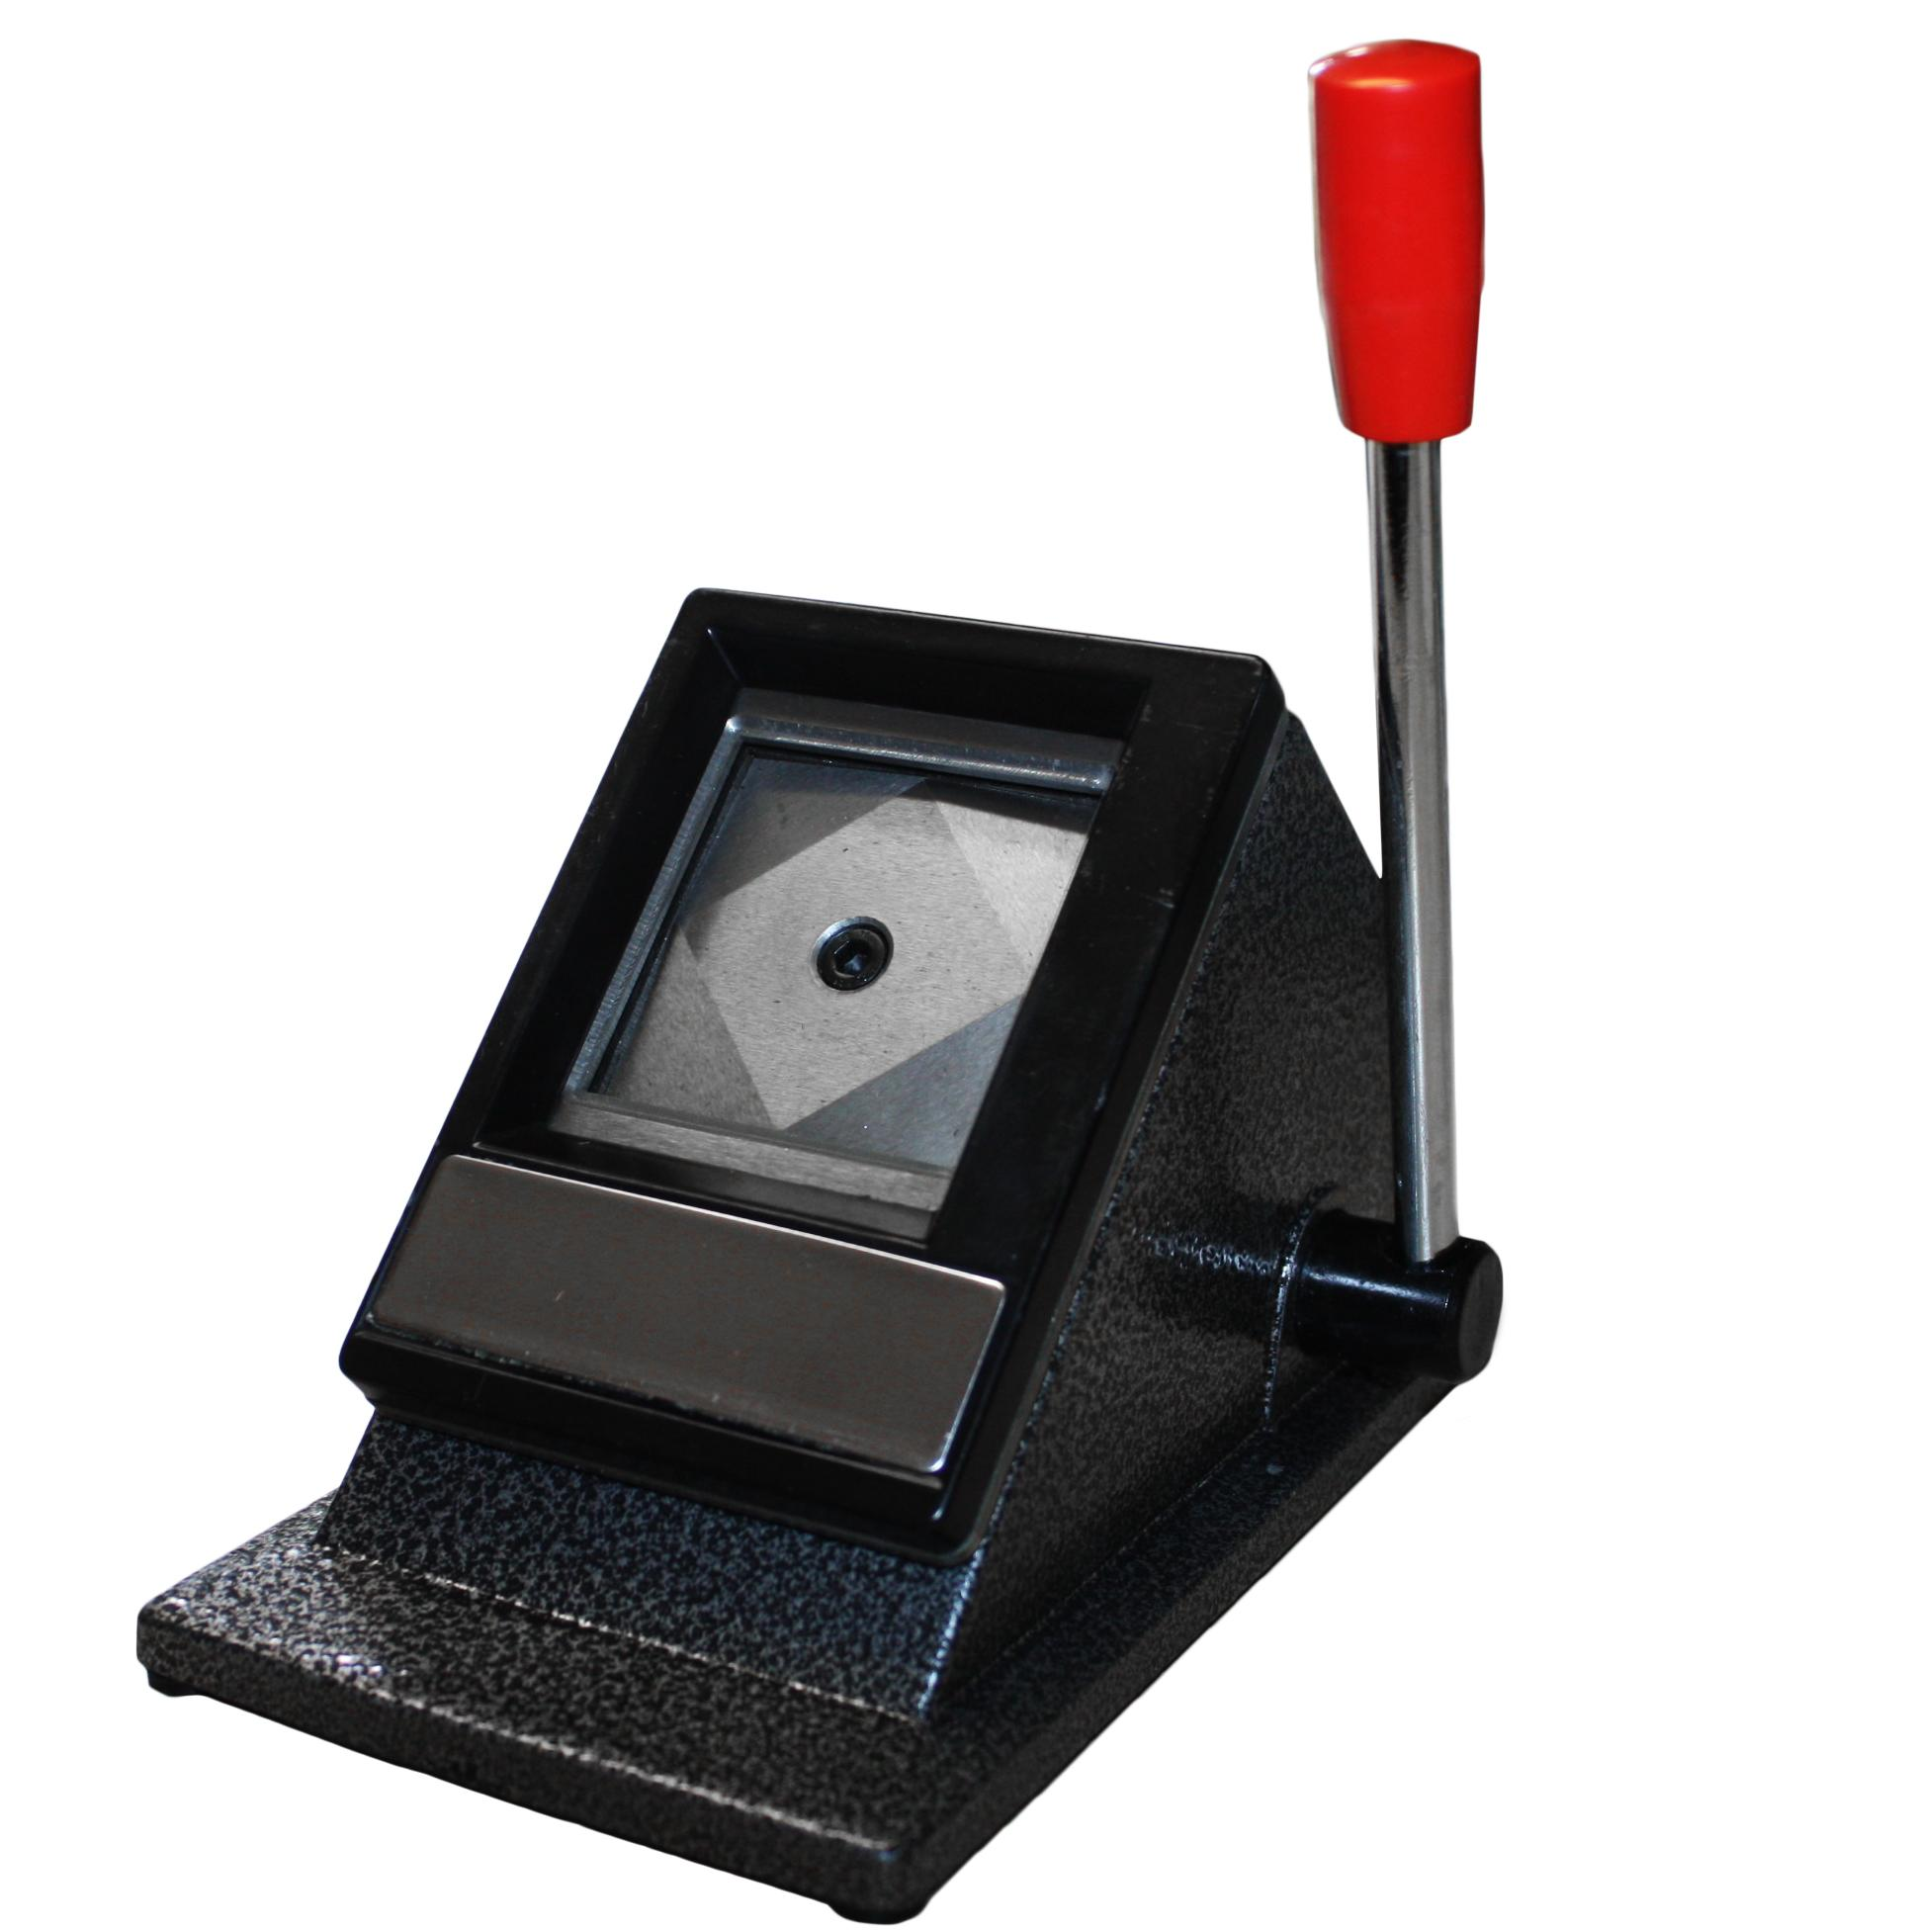 Passport photo cutter uk SourcingMachine - Official Site